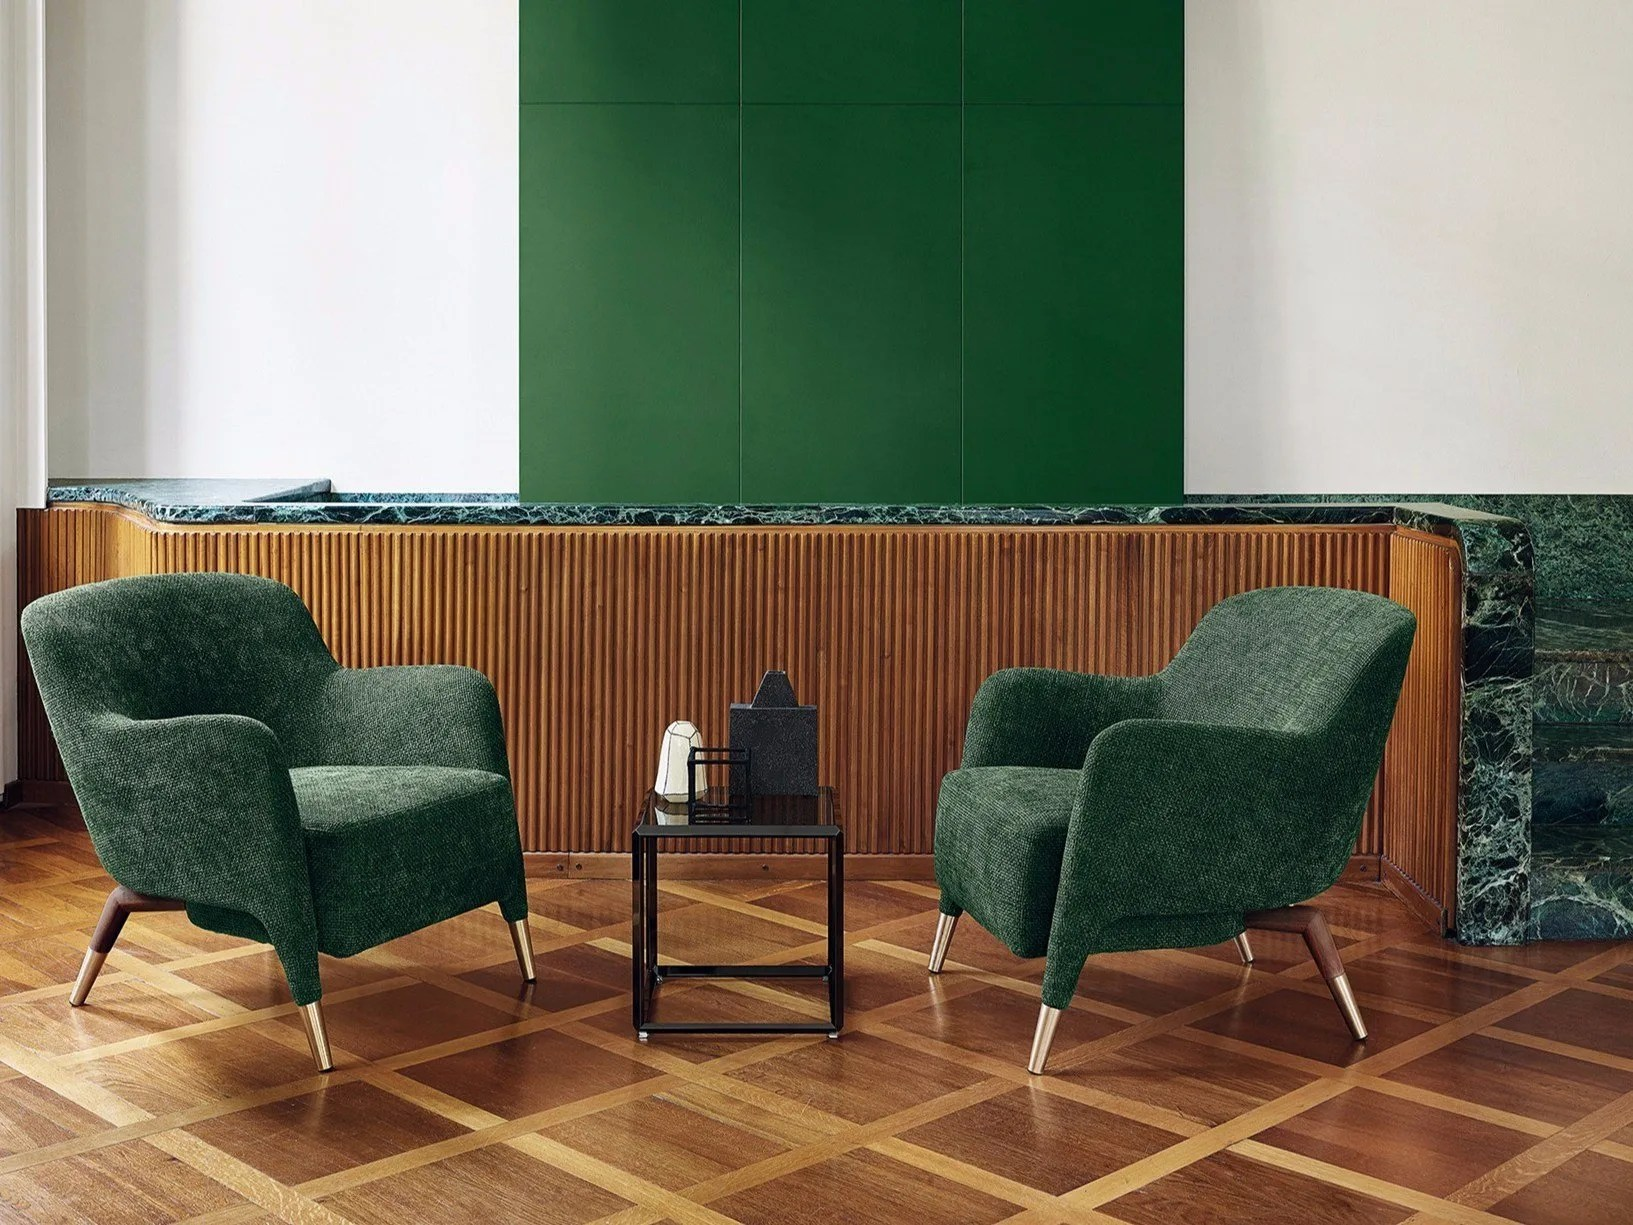 Design Couchtisch District The Flagship Store Molteni C Dada Takes Part In The Paris